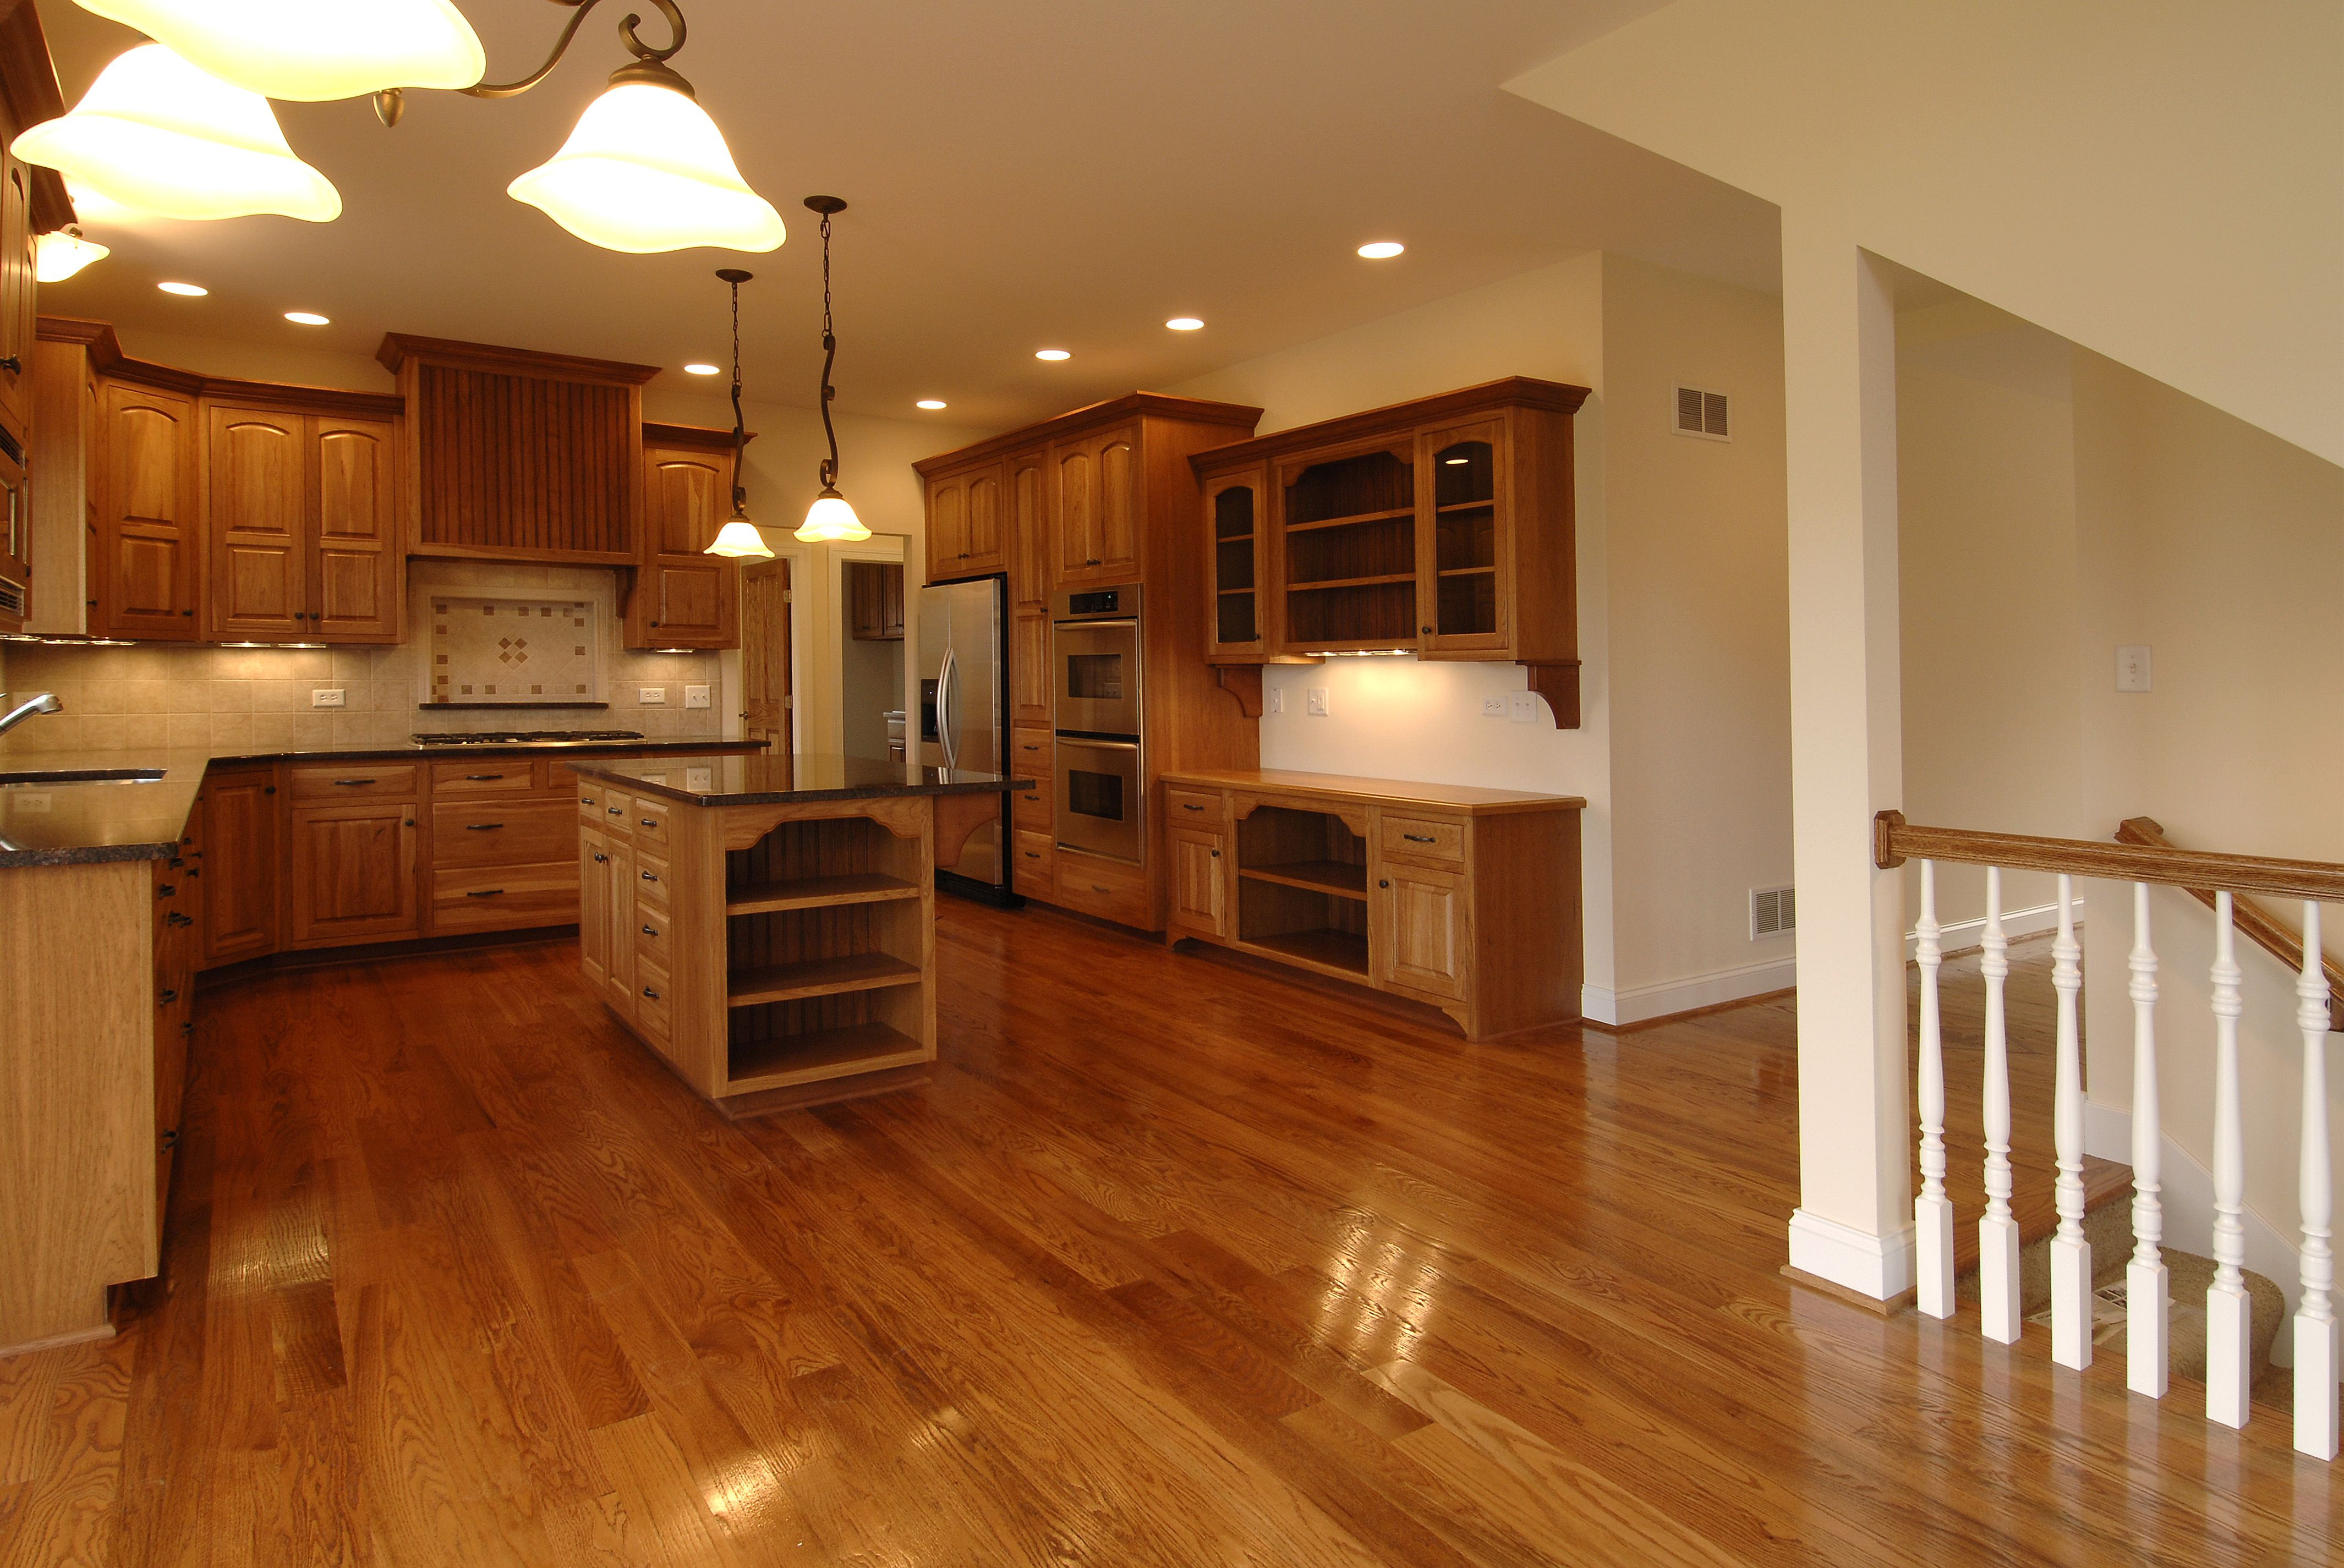 stores that sell hardwood flooring of bewitching pictures of hardwood floors in kitchens in floored throughout bewitching pictures of hardwood floors in kitchens in floored kitchen decor items new kitchen zeev kitchen zeev kitchen 0d